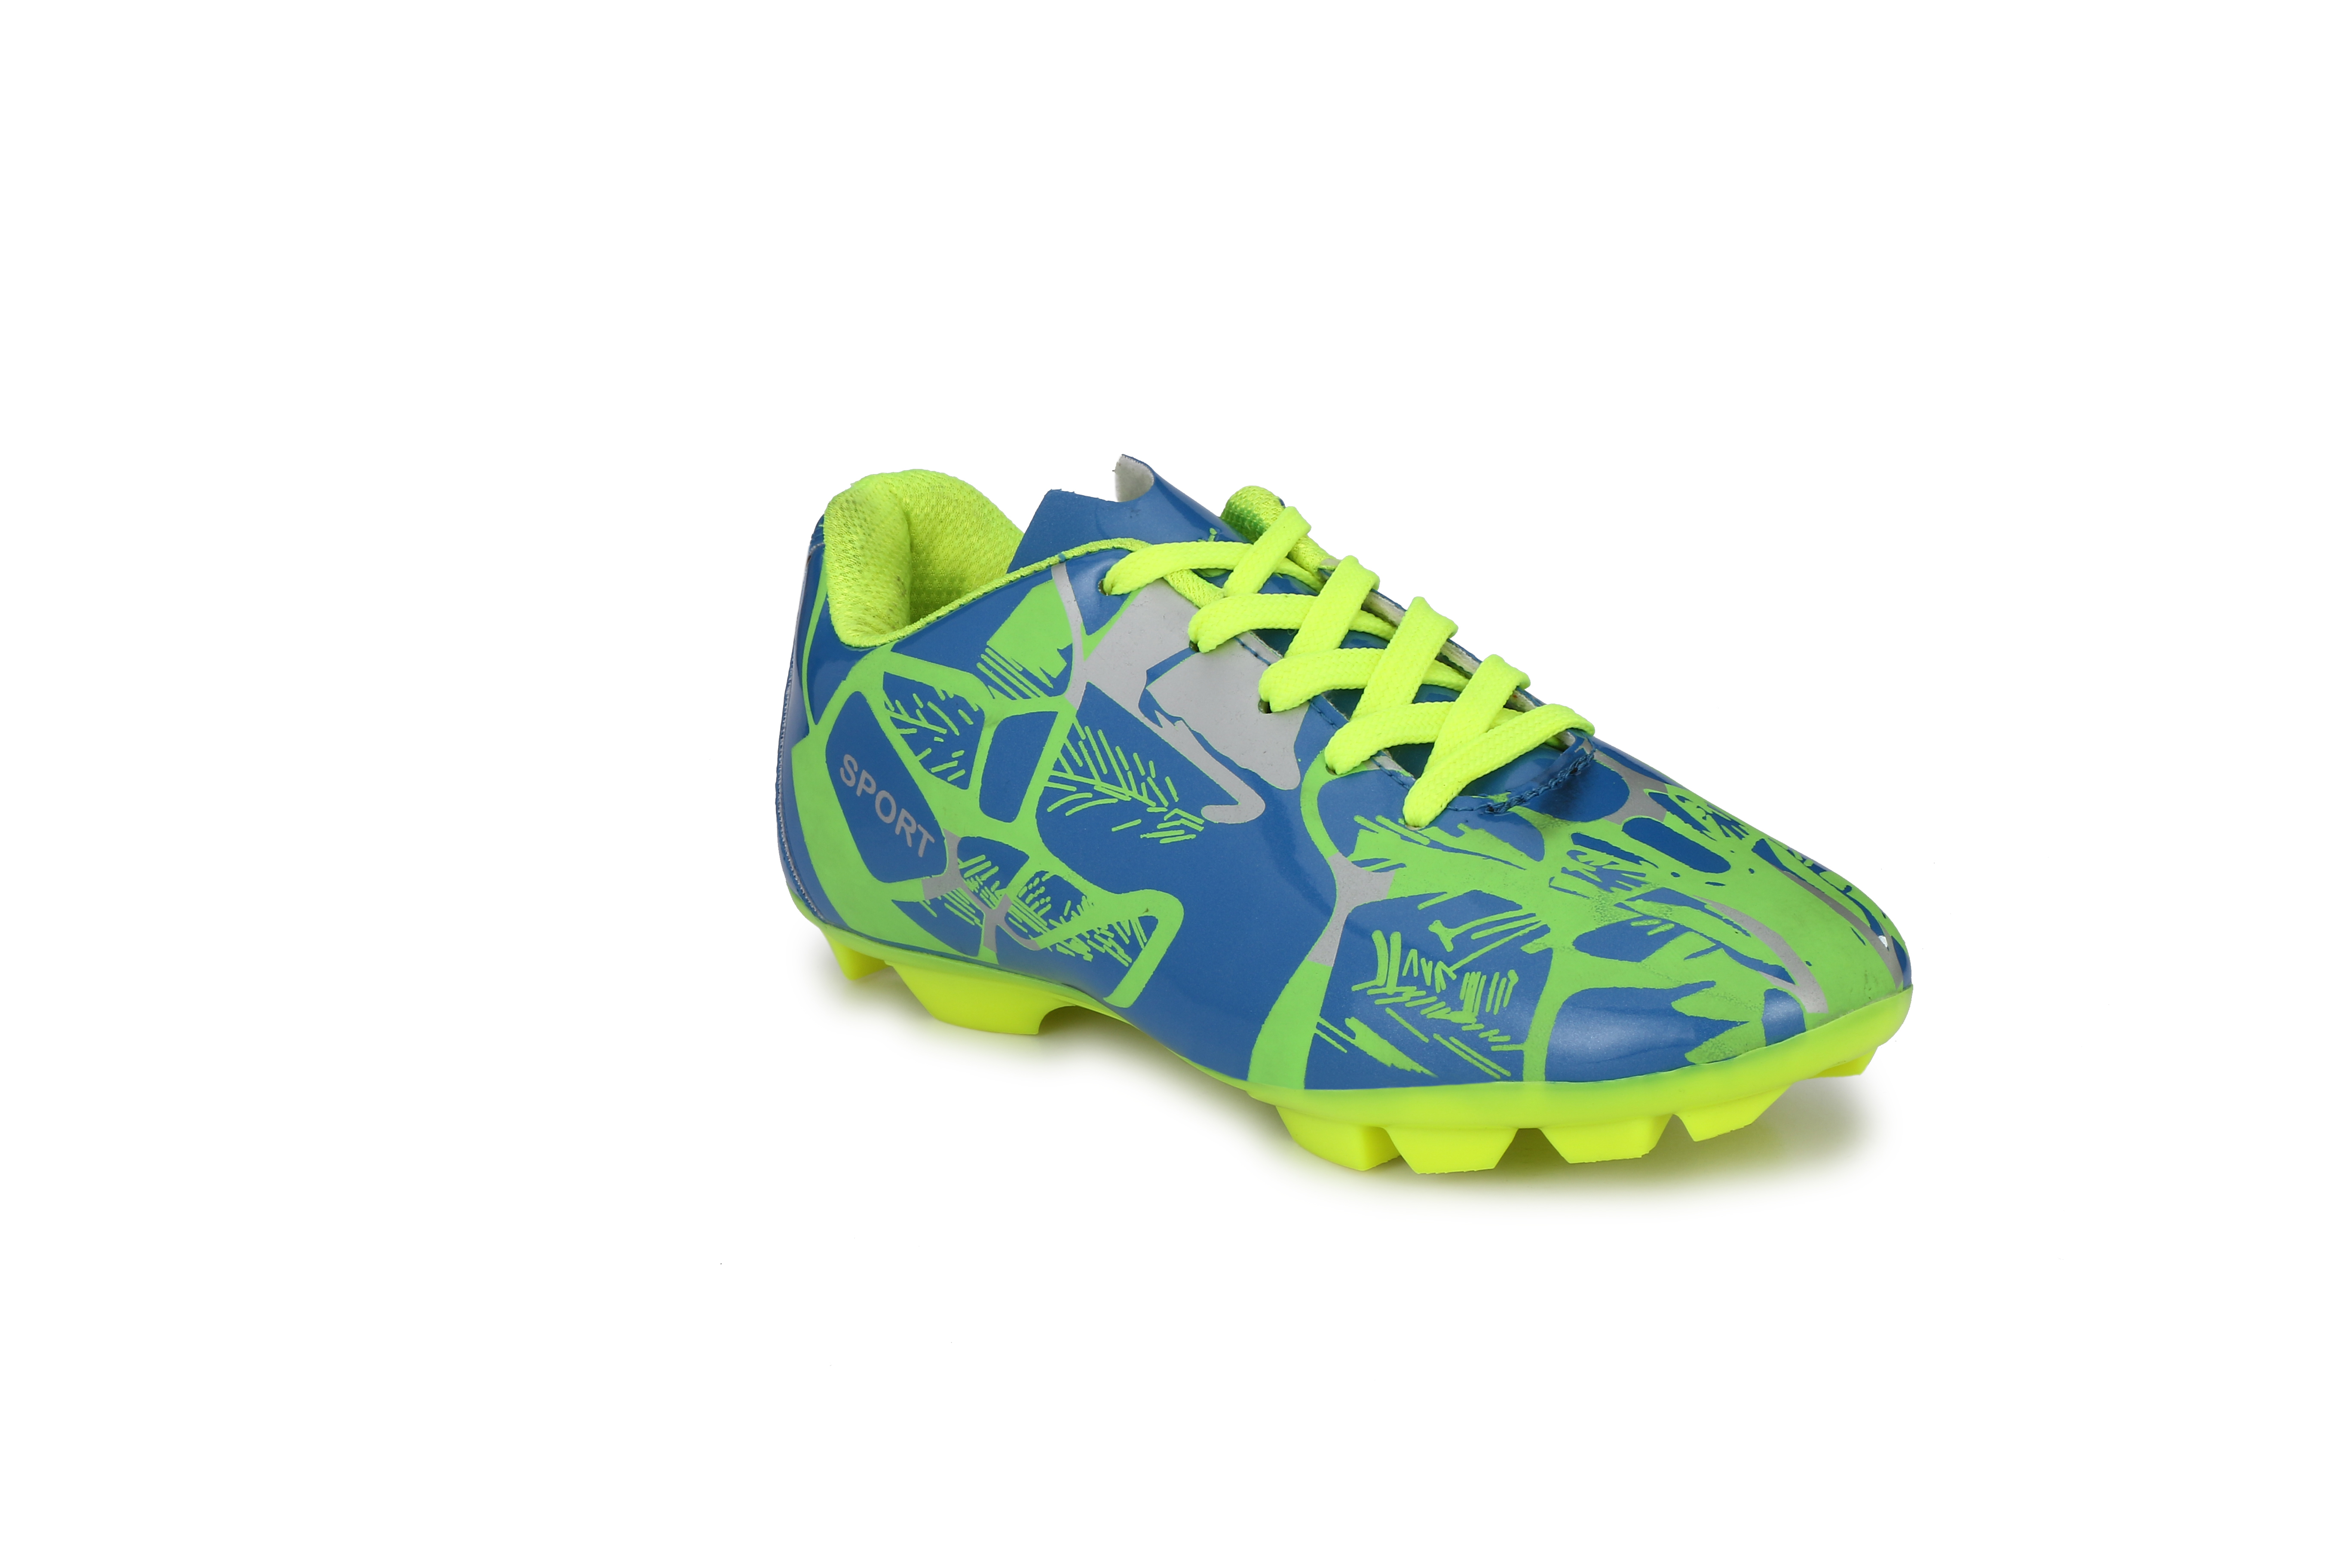 BUCIK Men\'s Neon Synthetic Leather Football Shoes